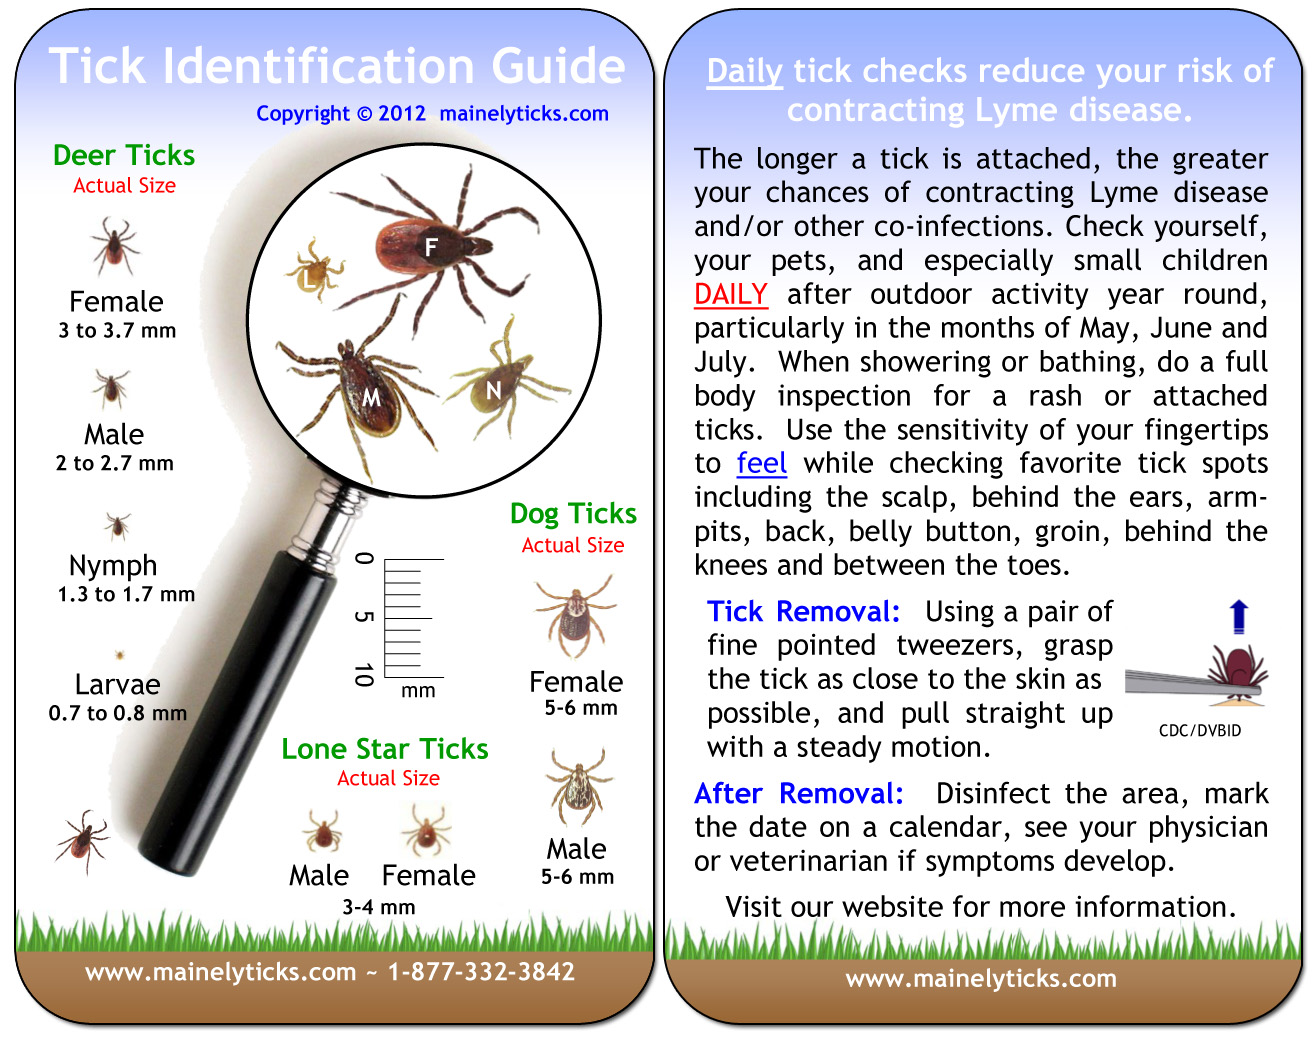 Lyme Disease Prevention Begins With Proper Tick